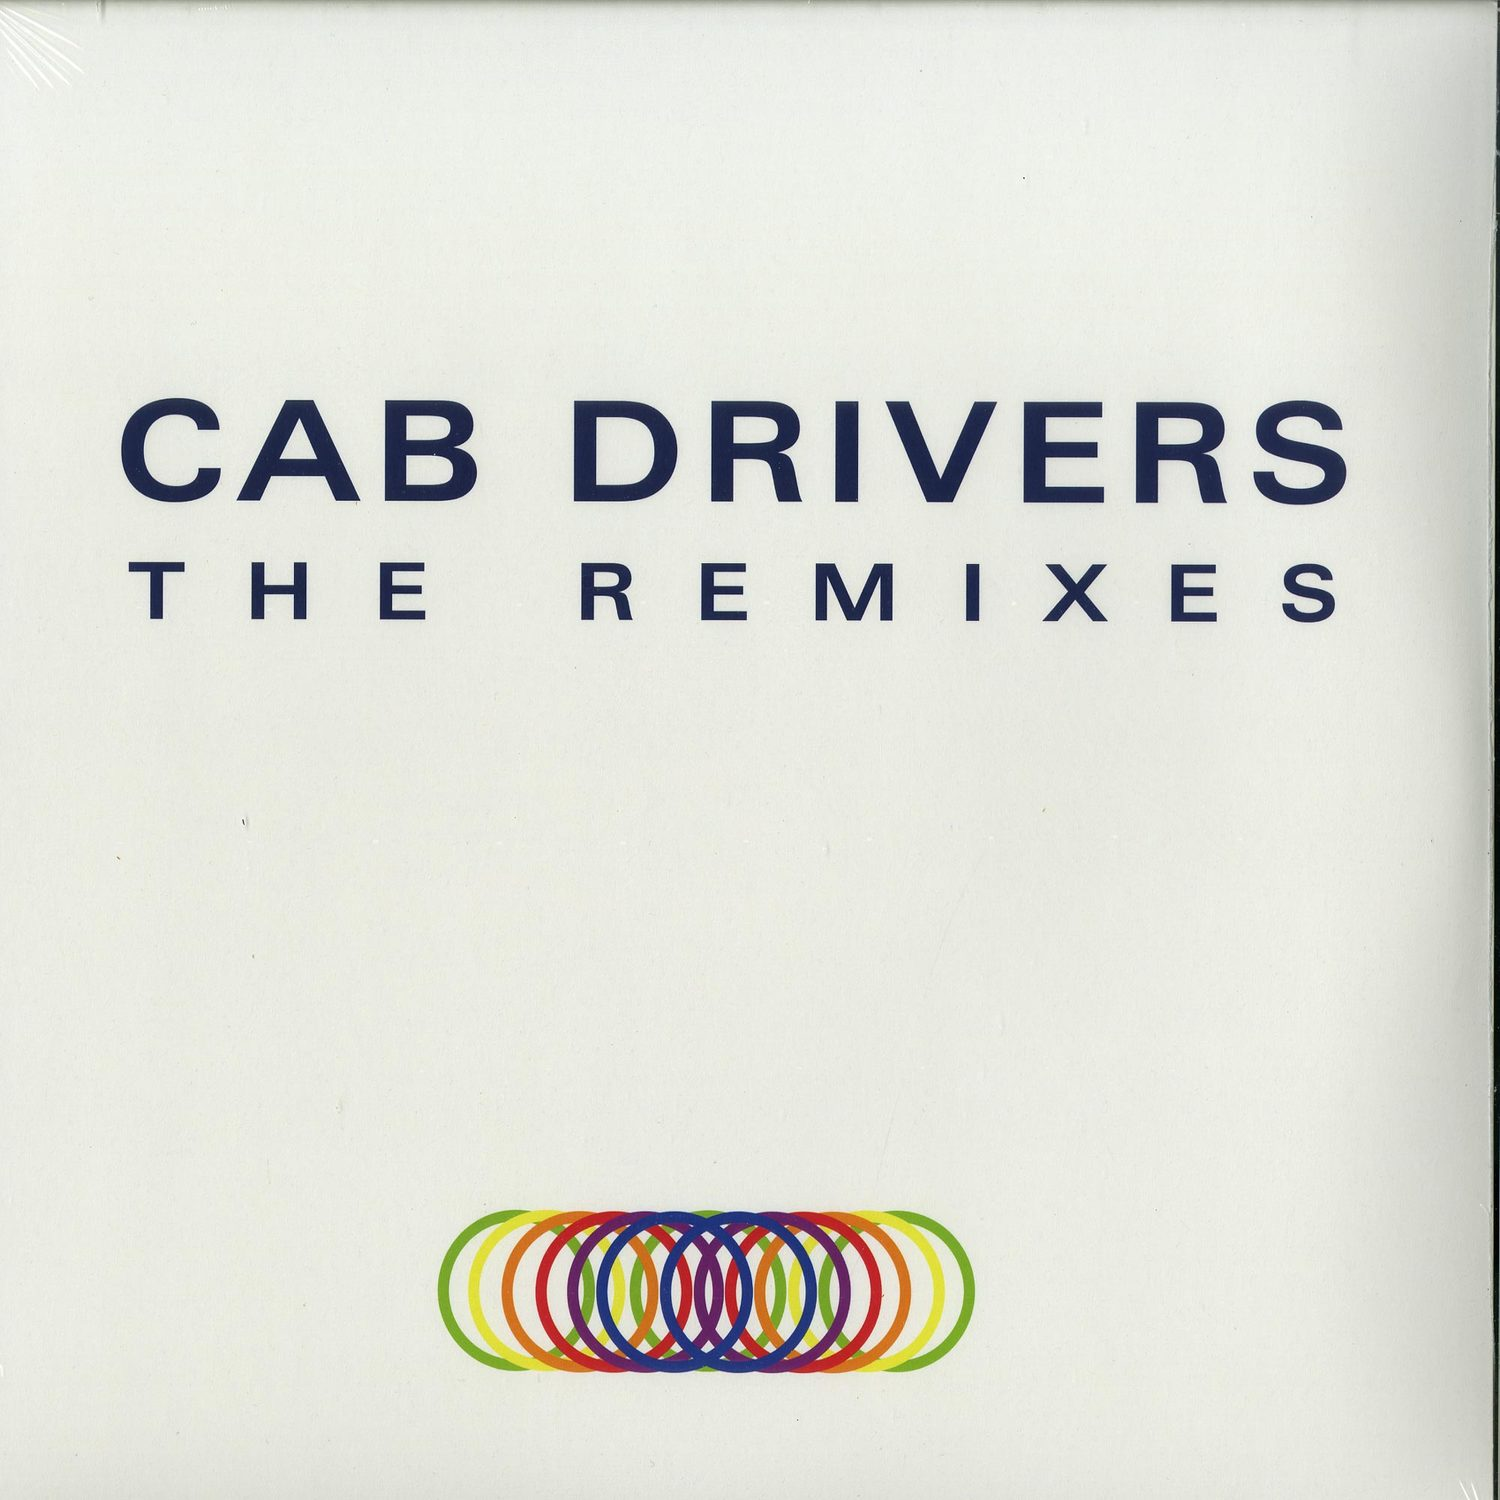 Cab Drivers - THE REMIXES